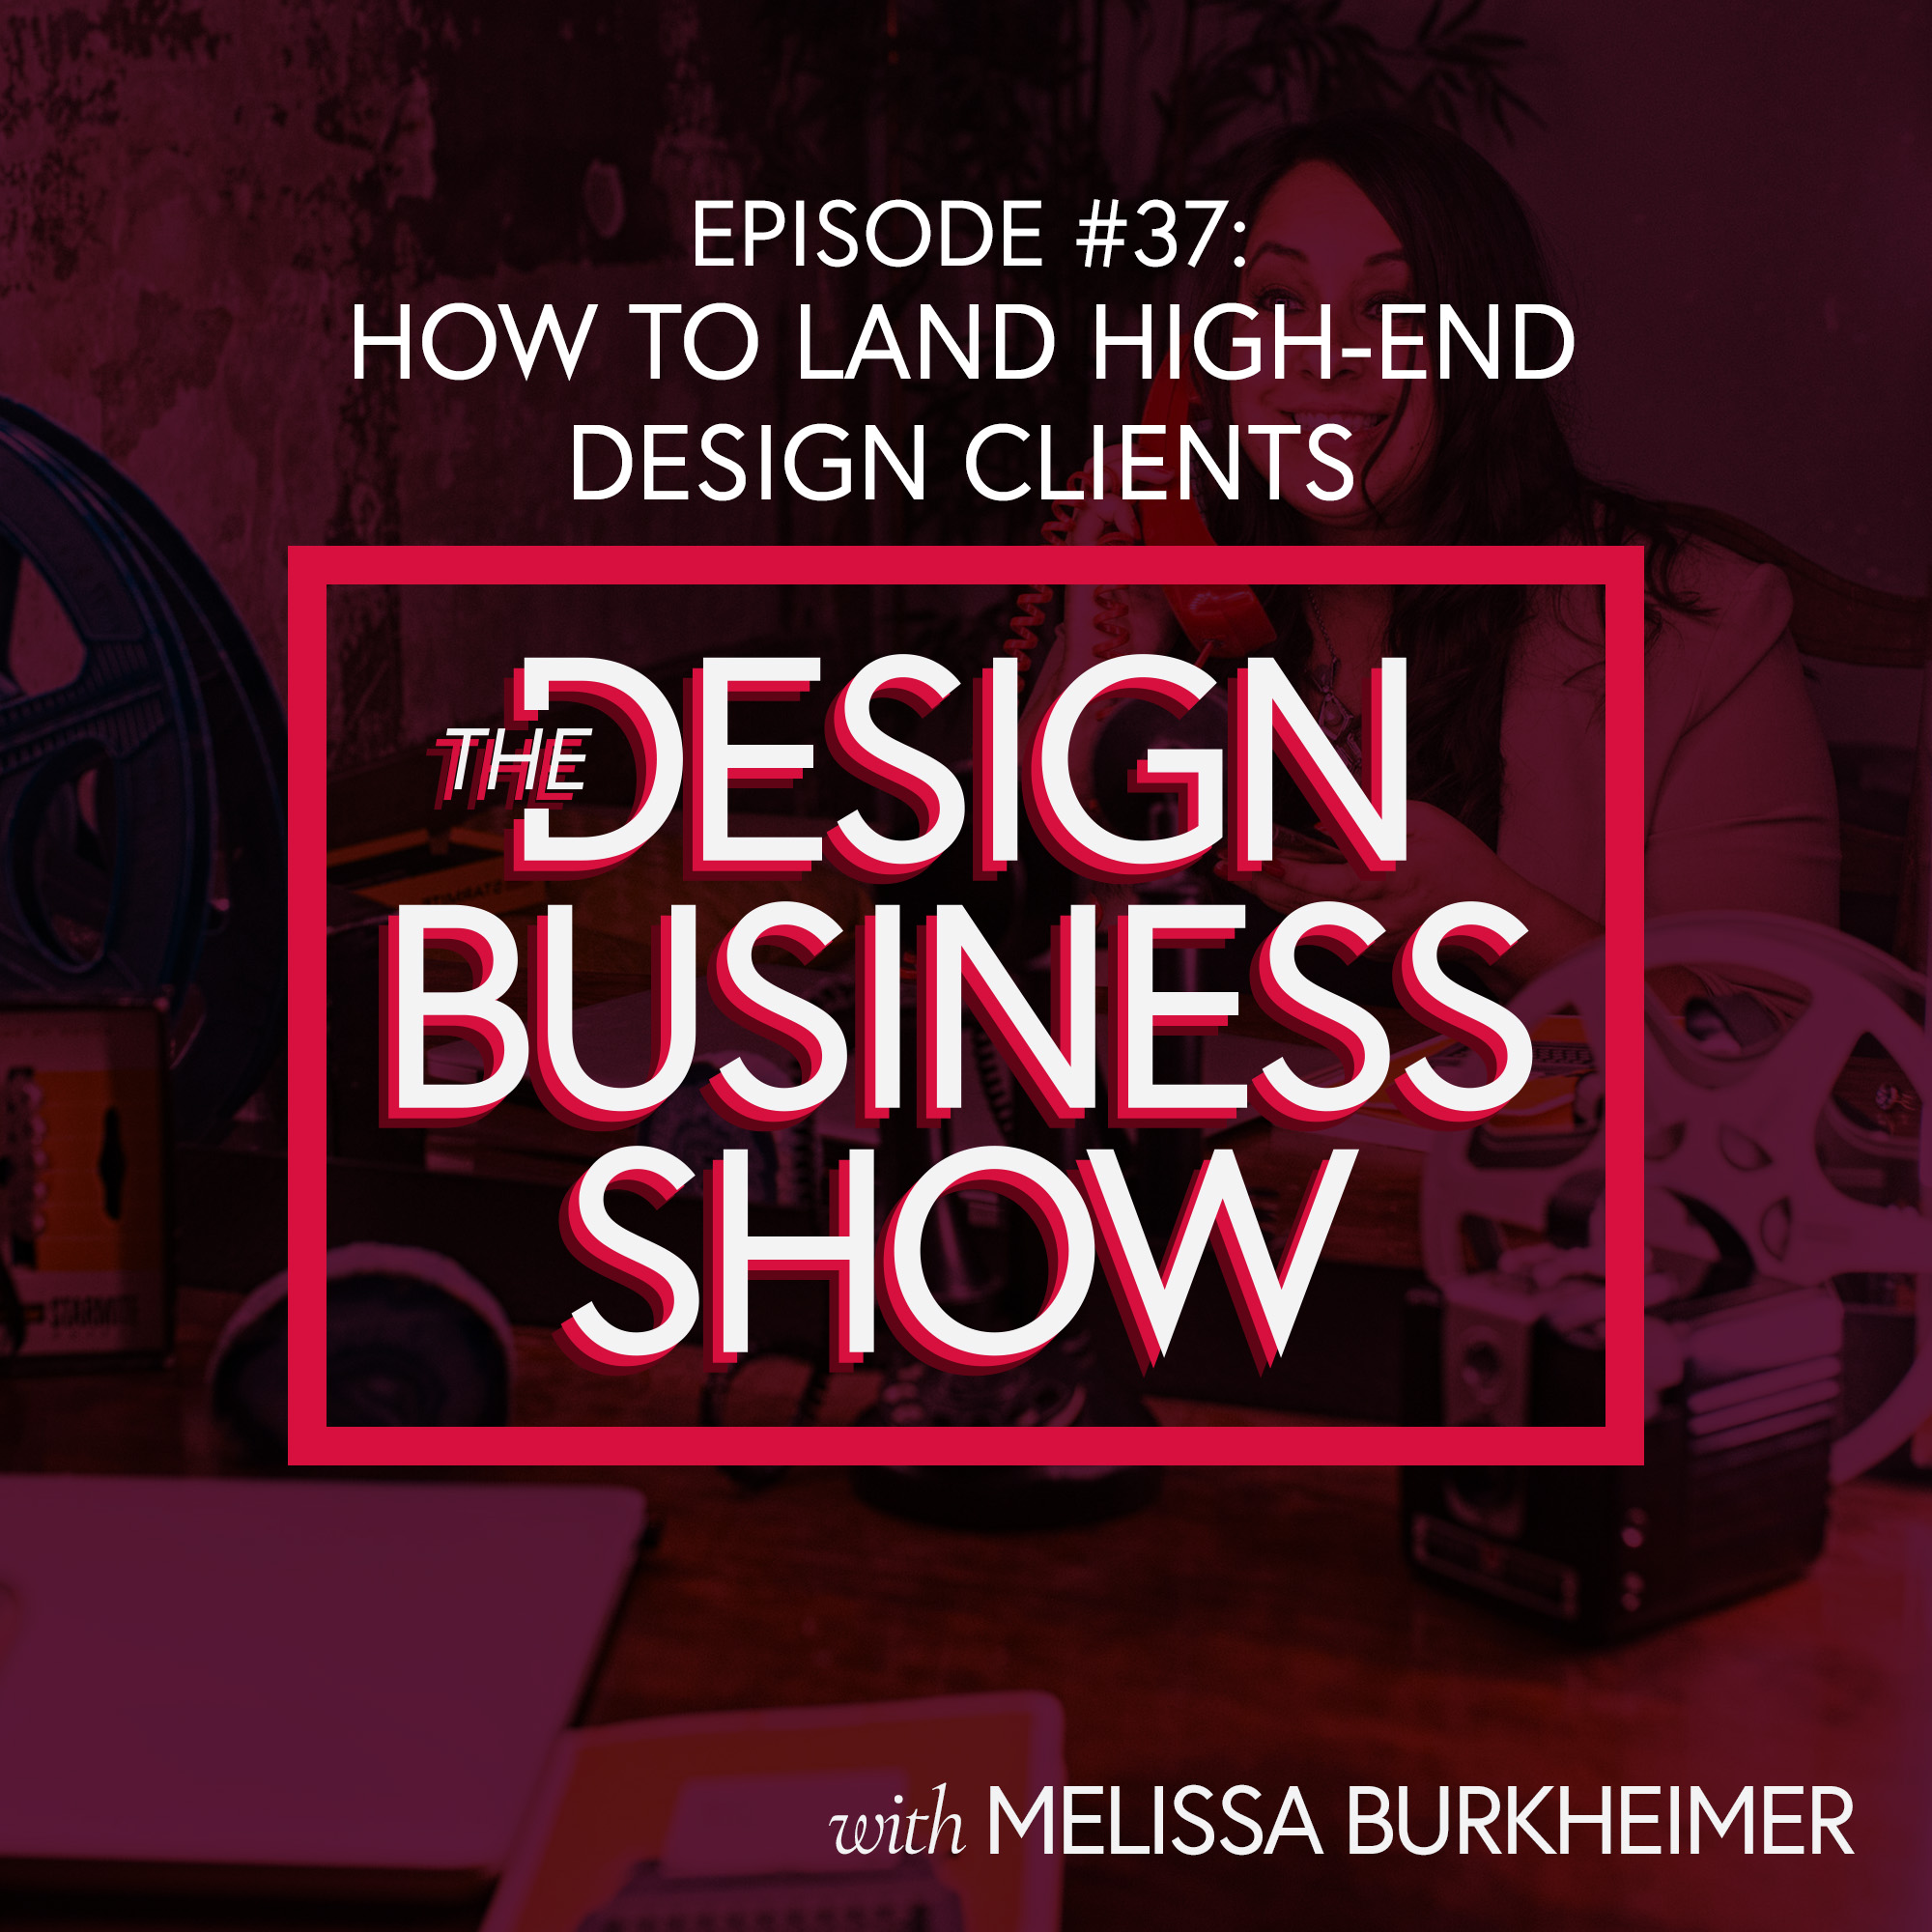 How can designers get high-end clients?